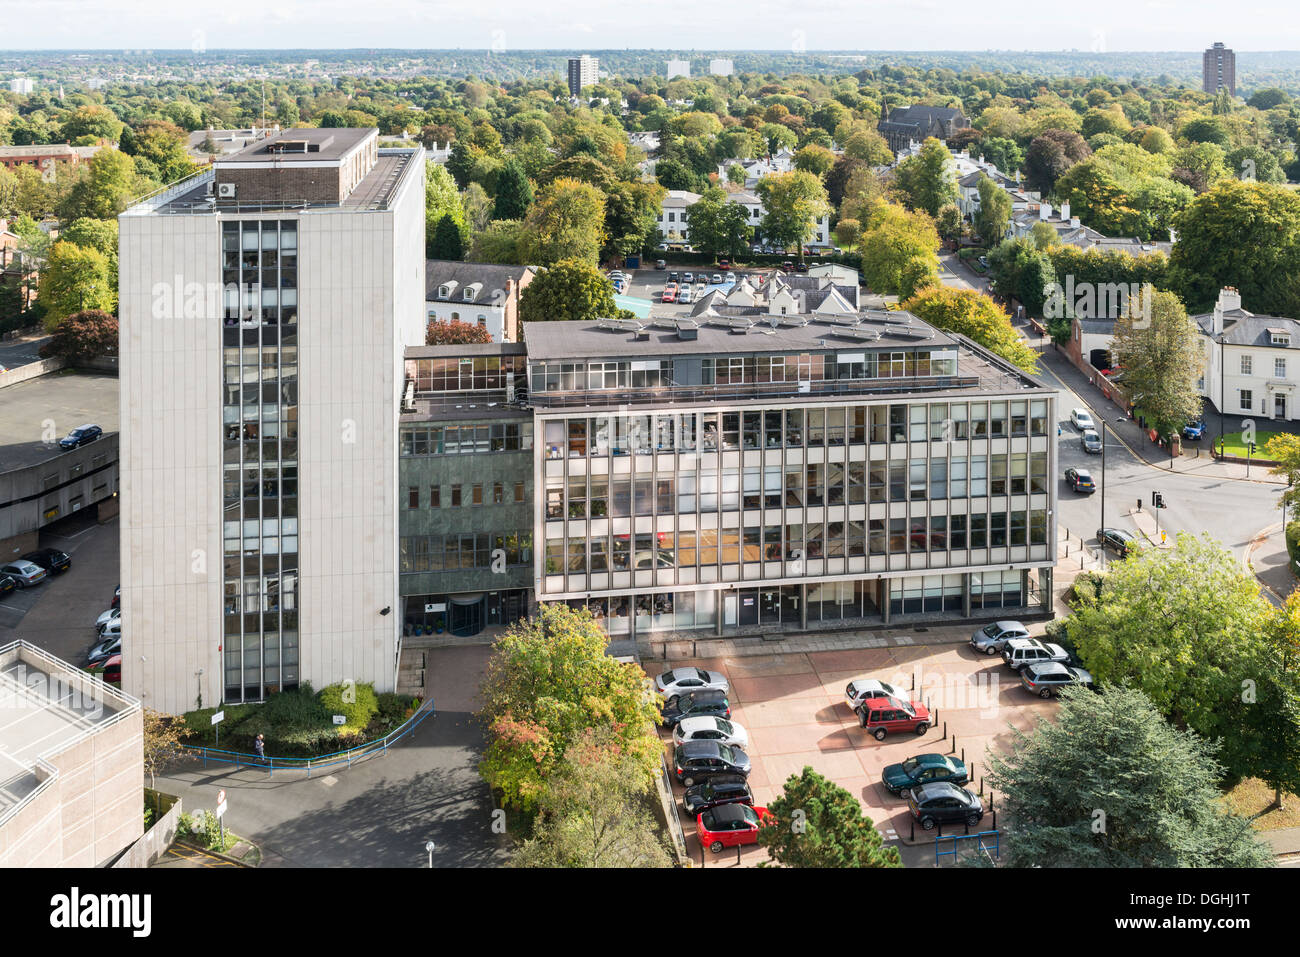 The Chamber of Commerce office building, Edgbaston, Birmingham, England - Stock Image